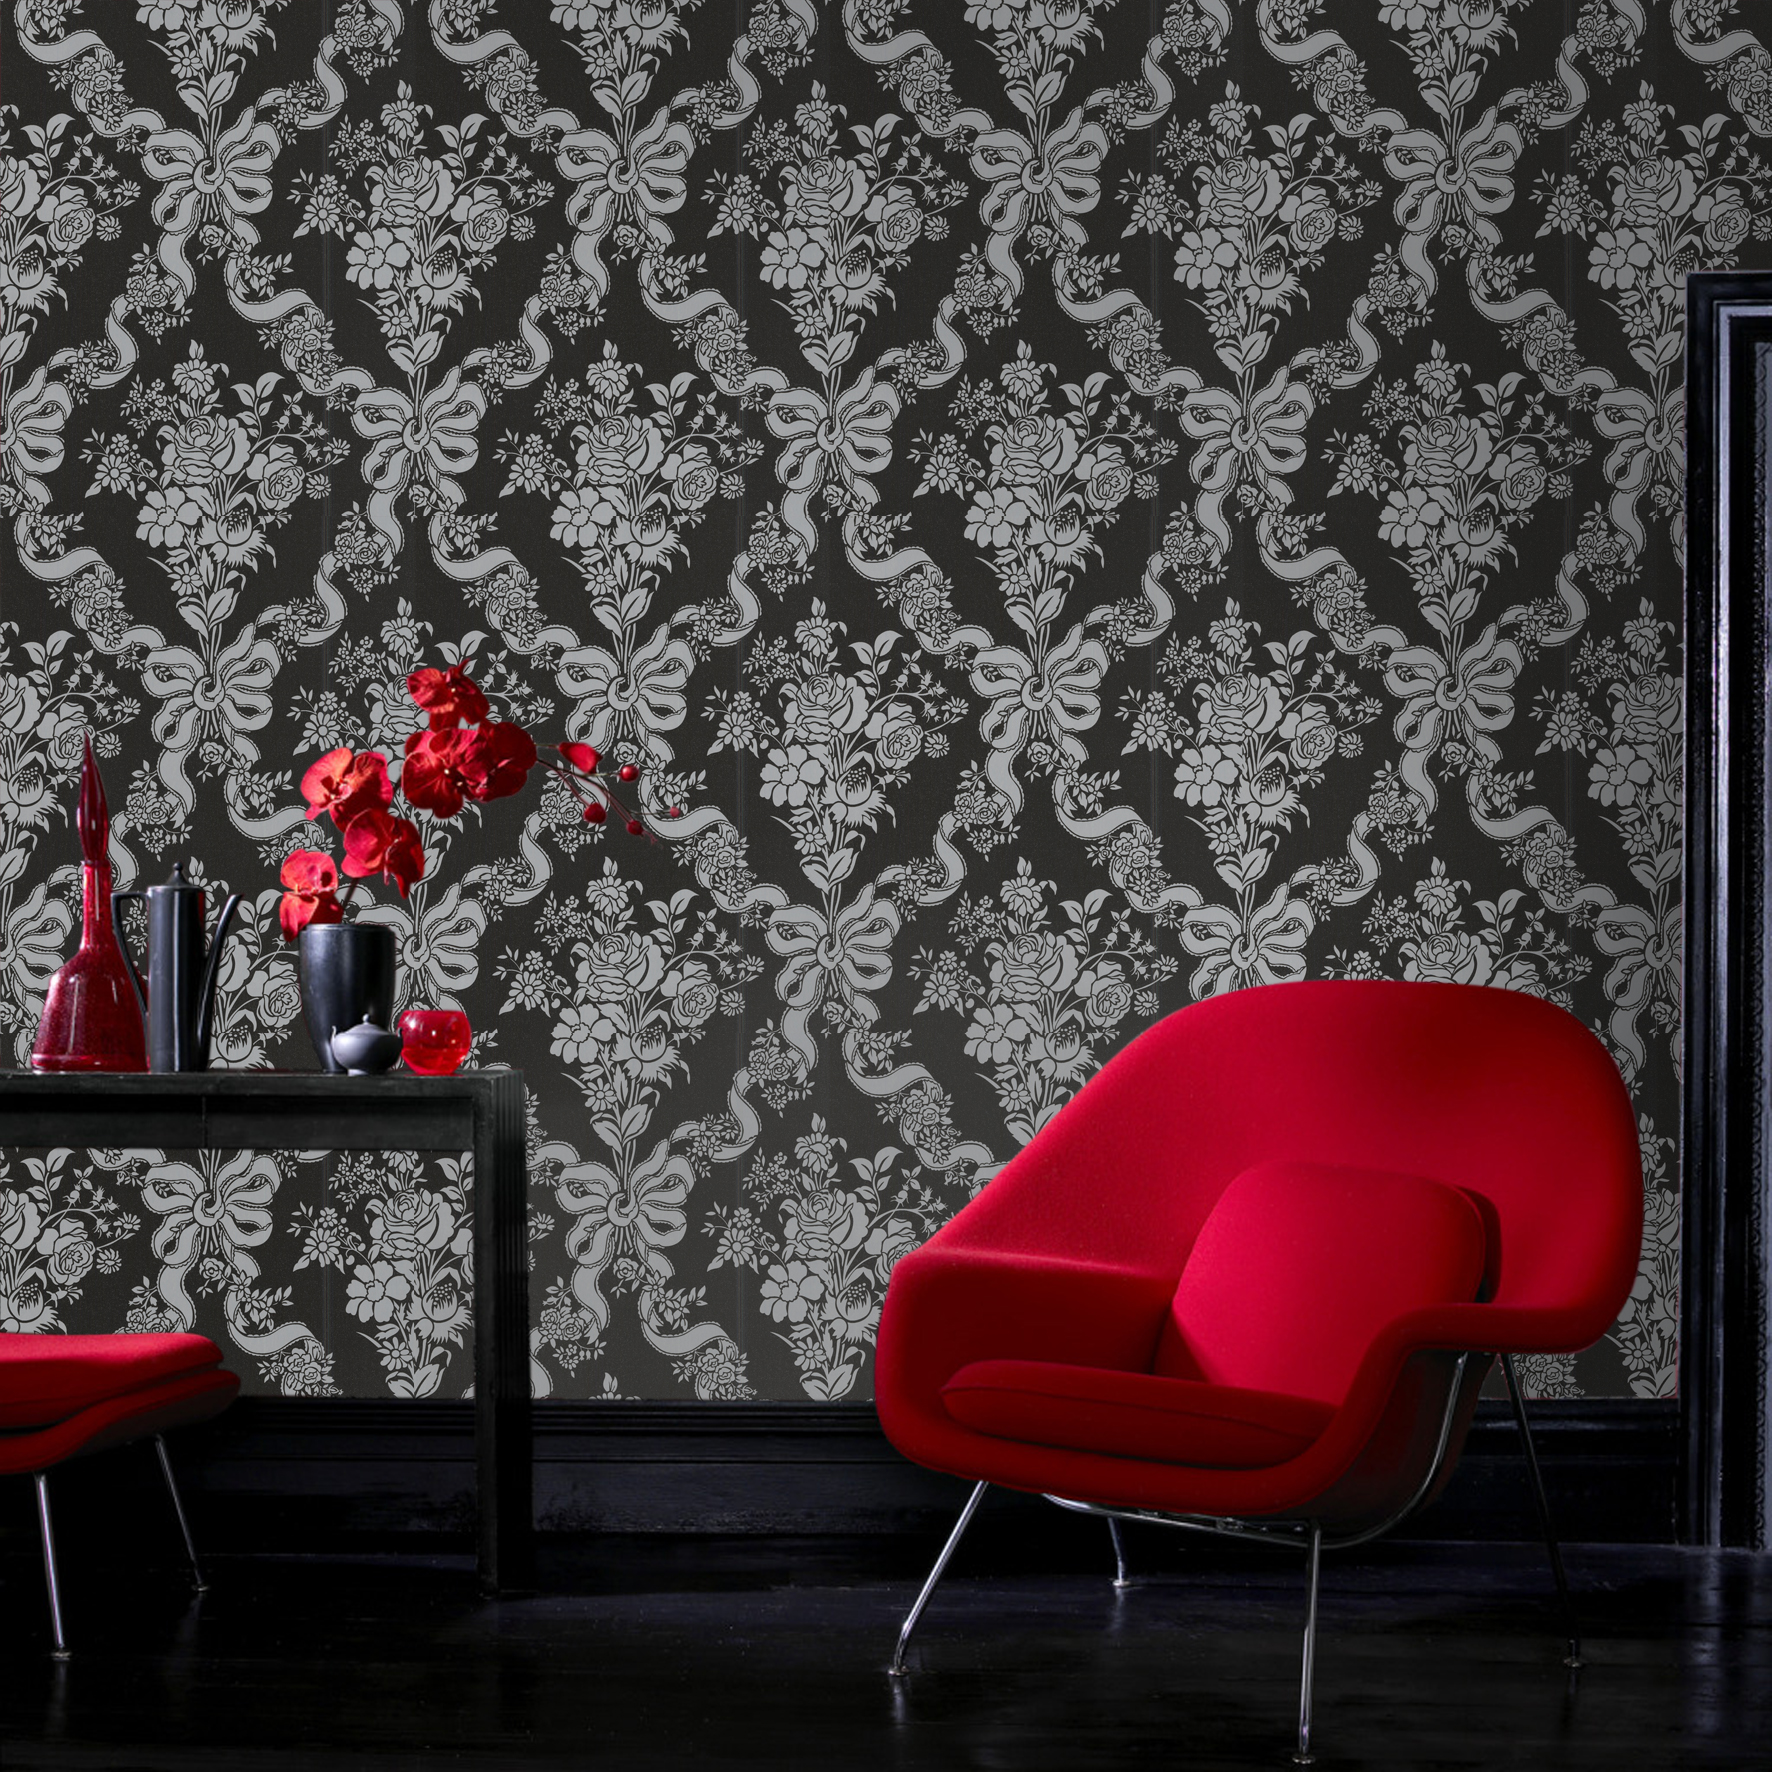 How To Paste A Wallpaper On Walls